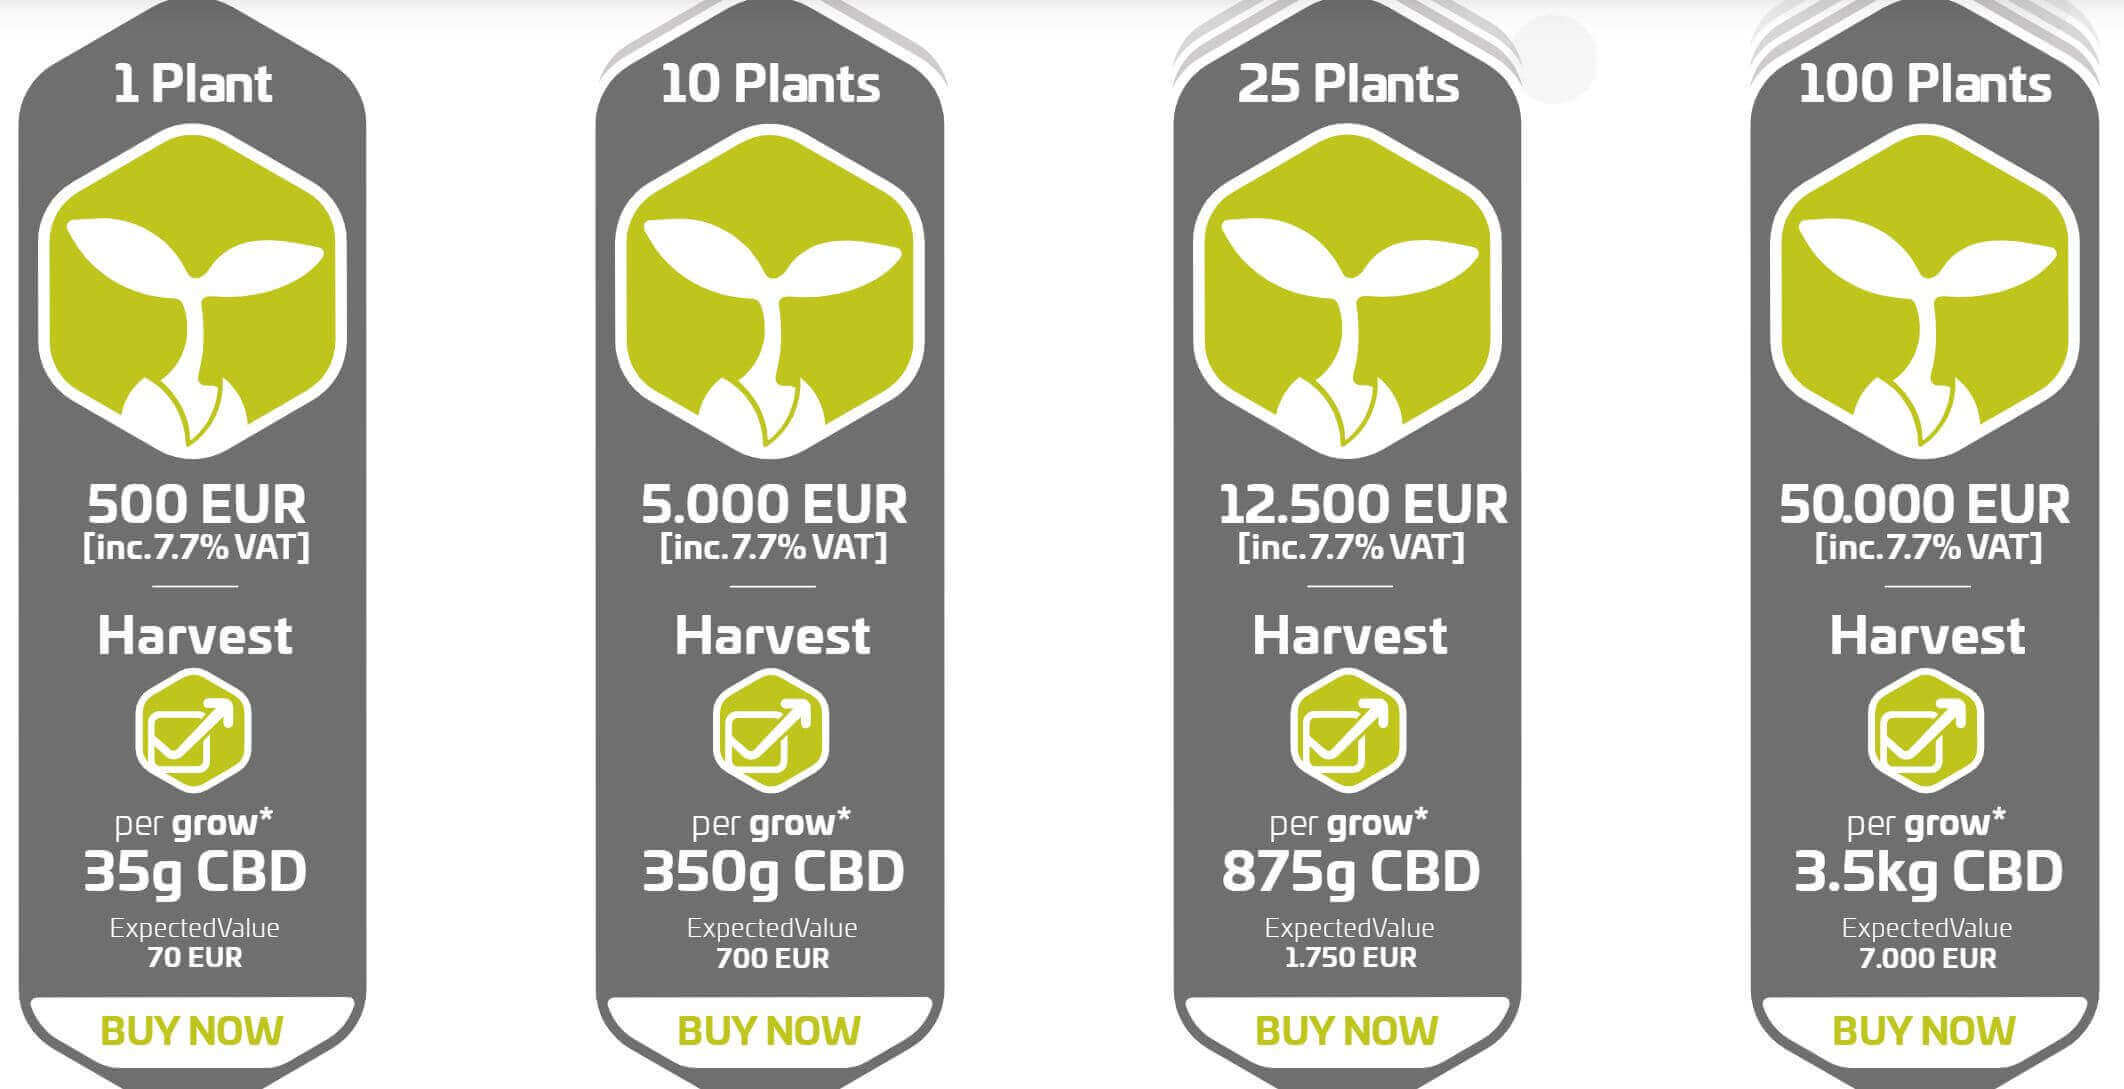 cannergrow plant sales